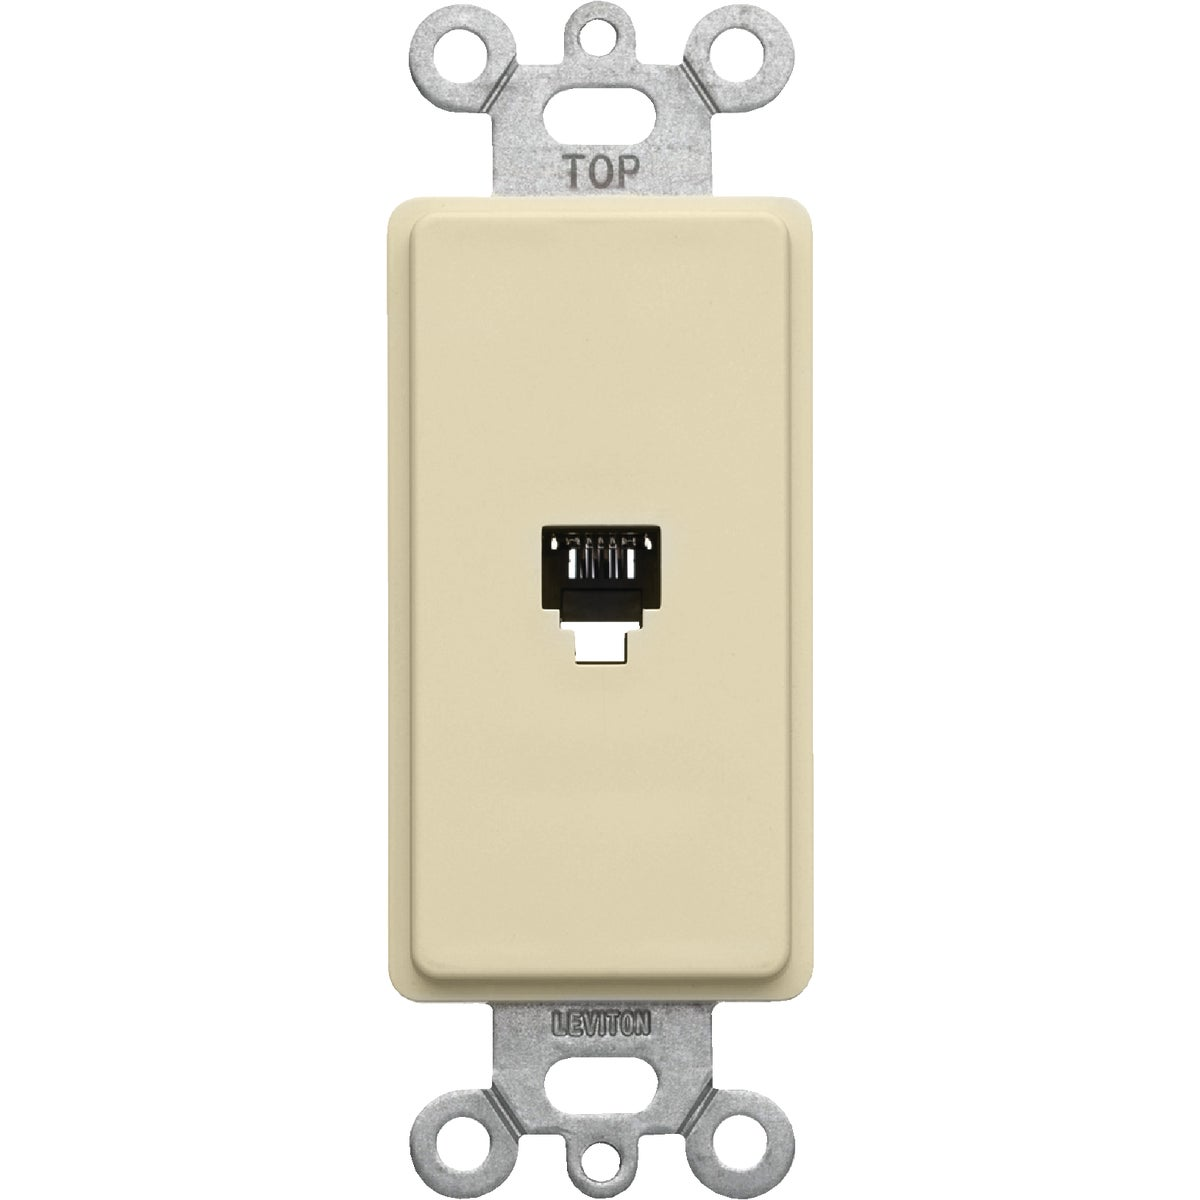 IVORY DEC PHONE JACK - 406491 by Leviton Mfg Co